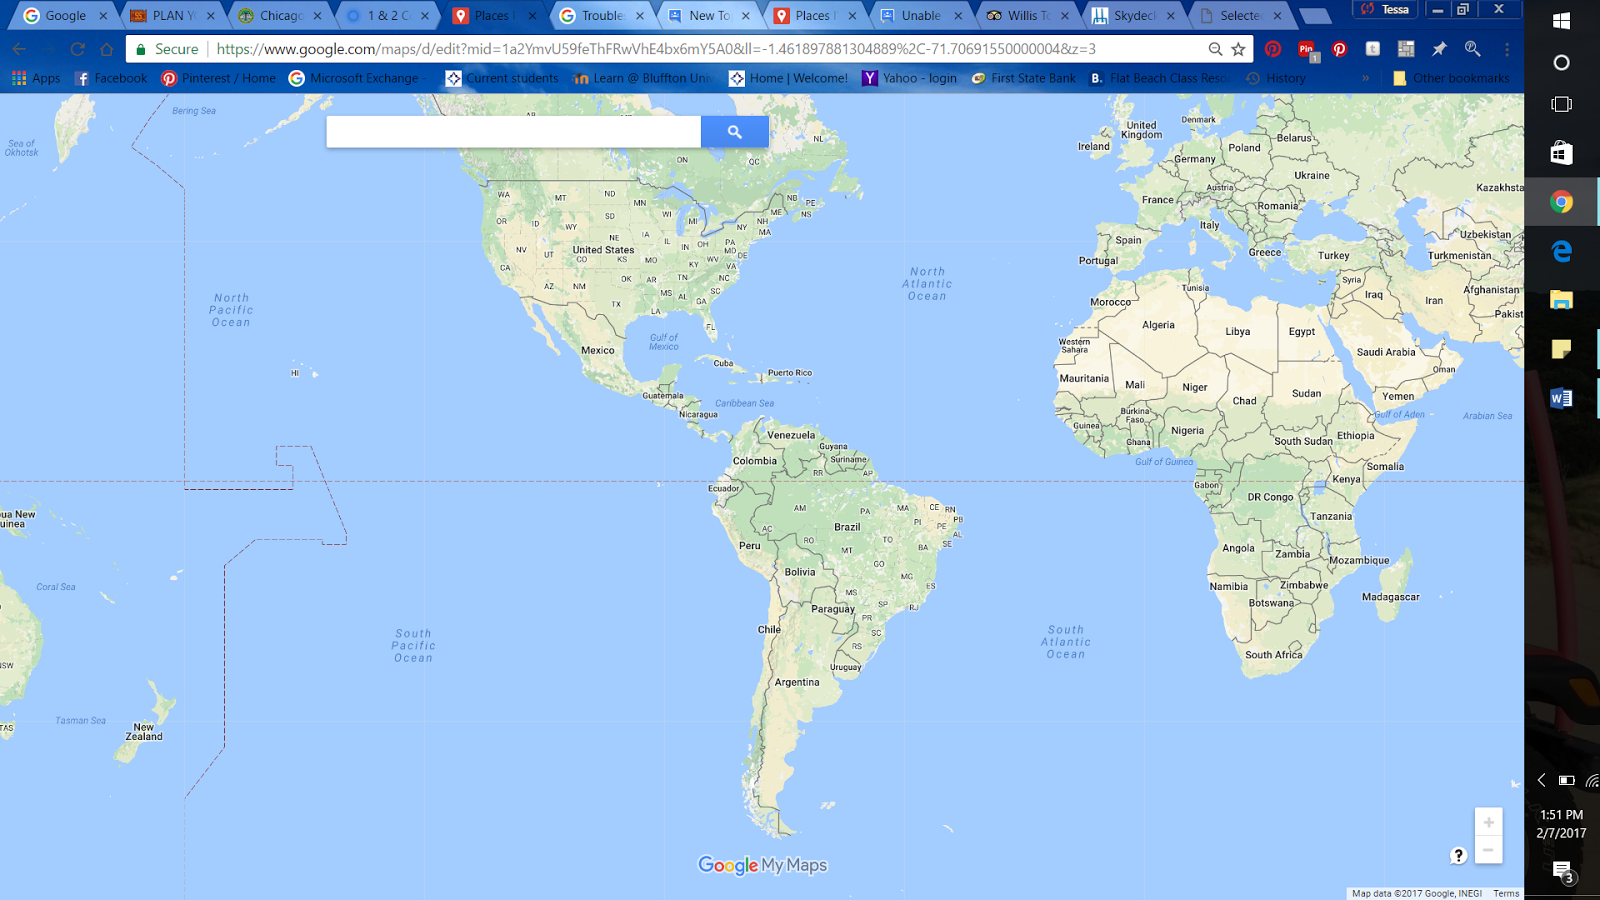 My Map Loading Error - Google Maps Help Google D World Map on microsoft world map, coca-cola world map, gaming world map, cities in greenland on a map, blank world map, bing world map, hp world map, google search, geocoin world map, agile world map, google maps street view, barnes & noble world map, national geographic world map, palm world map, apps world map, att world map, security world map, pepsi world map, google earth,